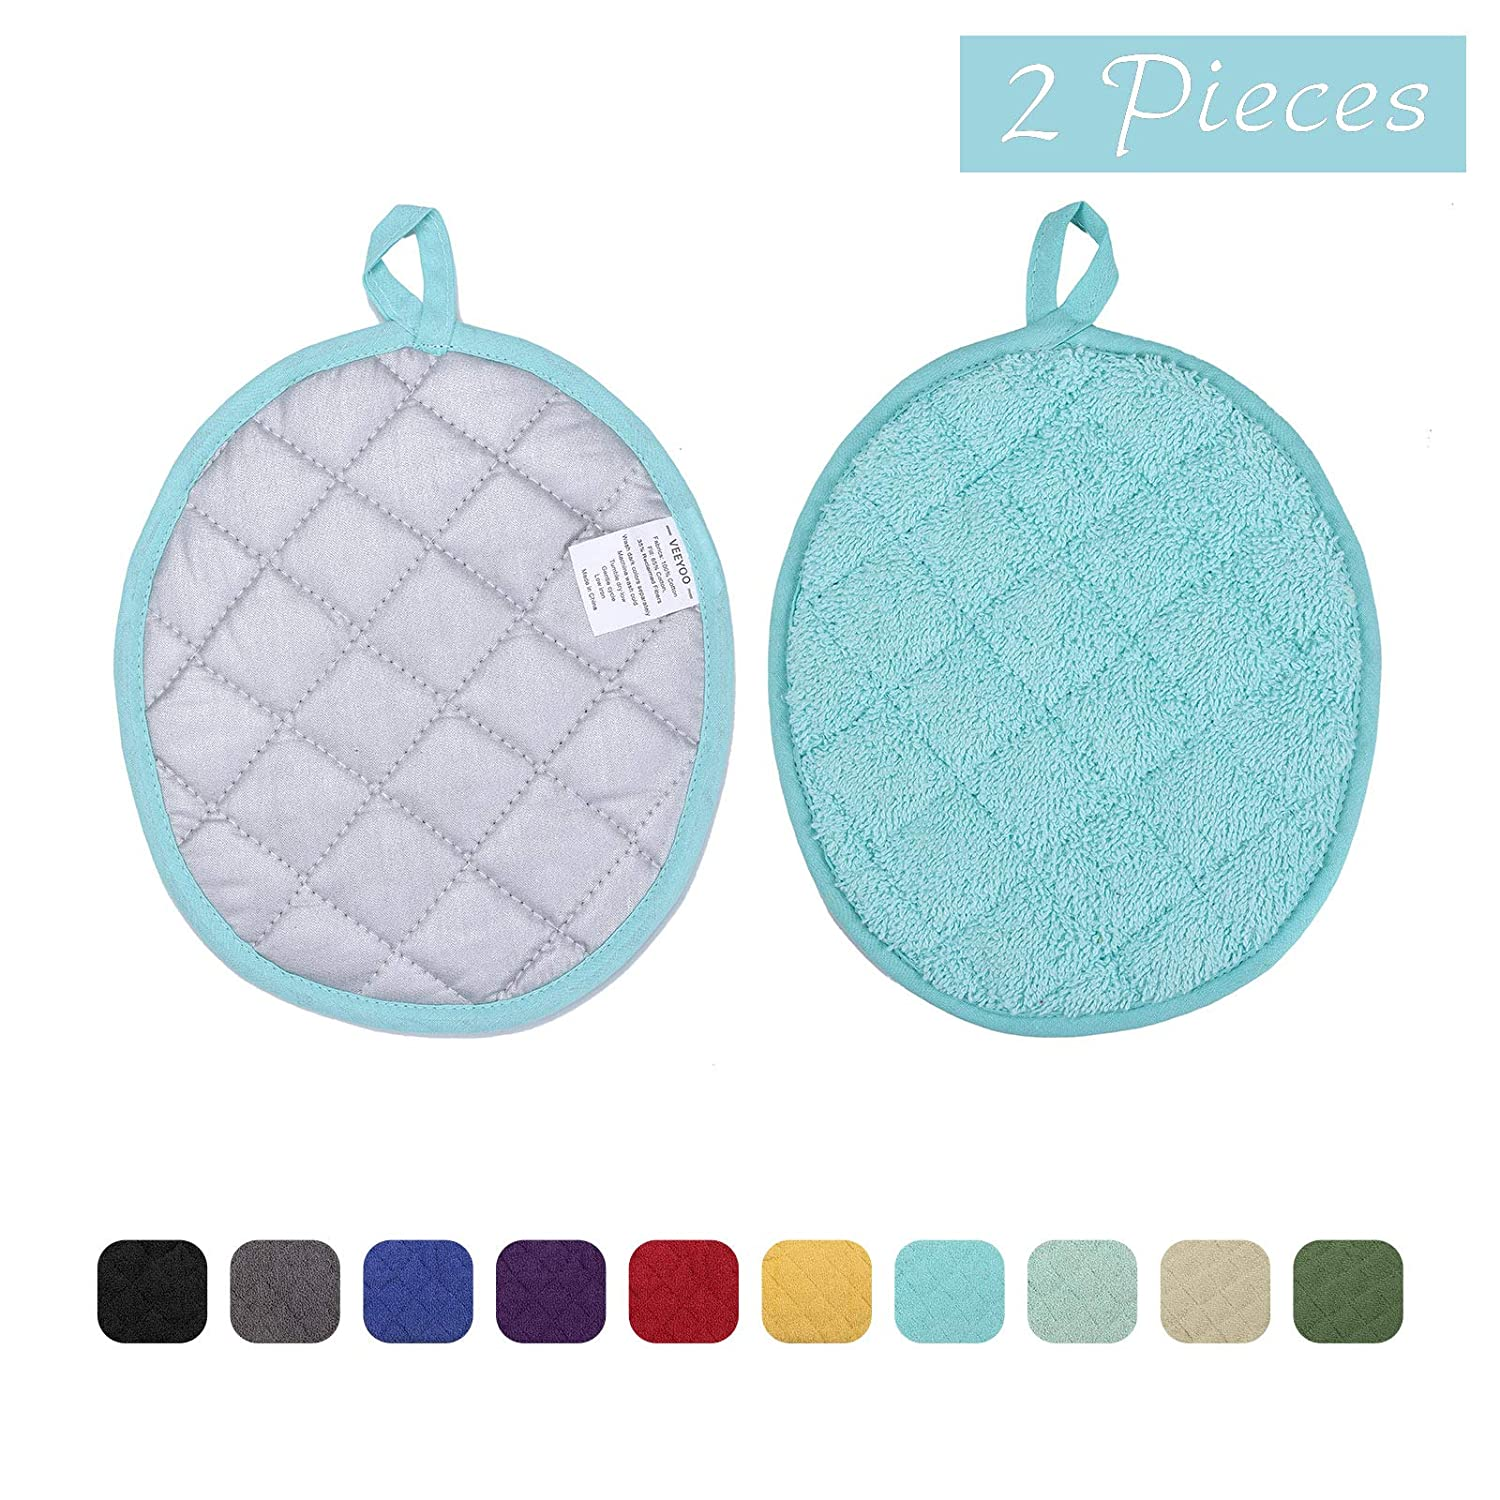 VEEYOO 100% Cotton Pot Holders Set, 9.5x7.5 Inches Heat Resistant Hot Pads, Everyday Quality Kitchen Coaster, 2 PCS Oval Pot Holders, Aqua Blue